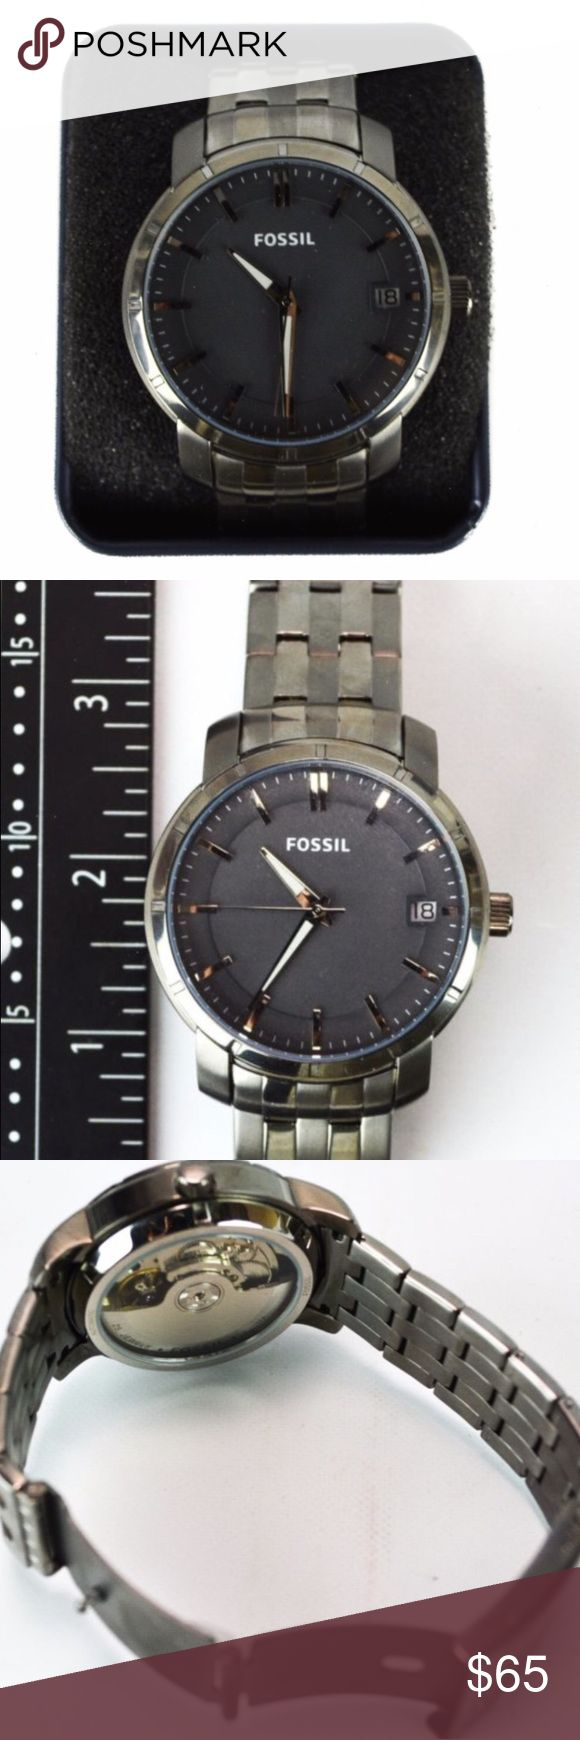 NWT Fossil Automatic Watch  Men's Fossil automatic watch.  Ion plated steel, gunmetal color with silver accents in the face. Includes the date. Never warn, tags still attached. Has few minor scratches but is in excellent condition! Authentic. No trades! Fossil Accessories Watches